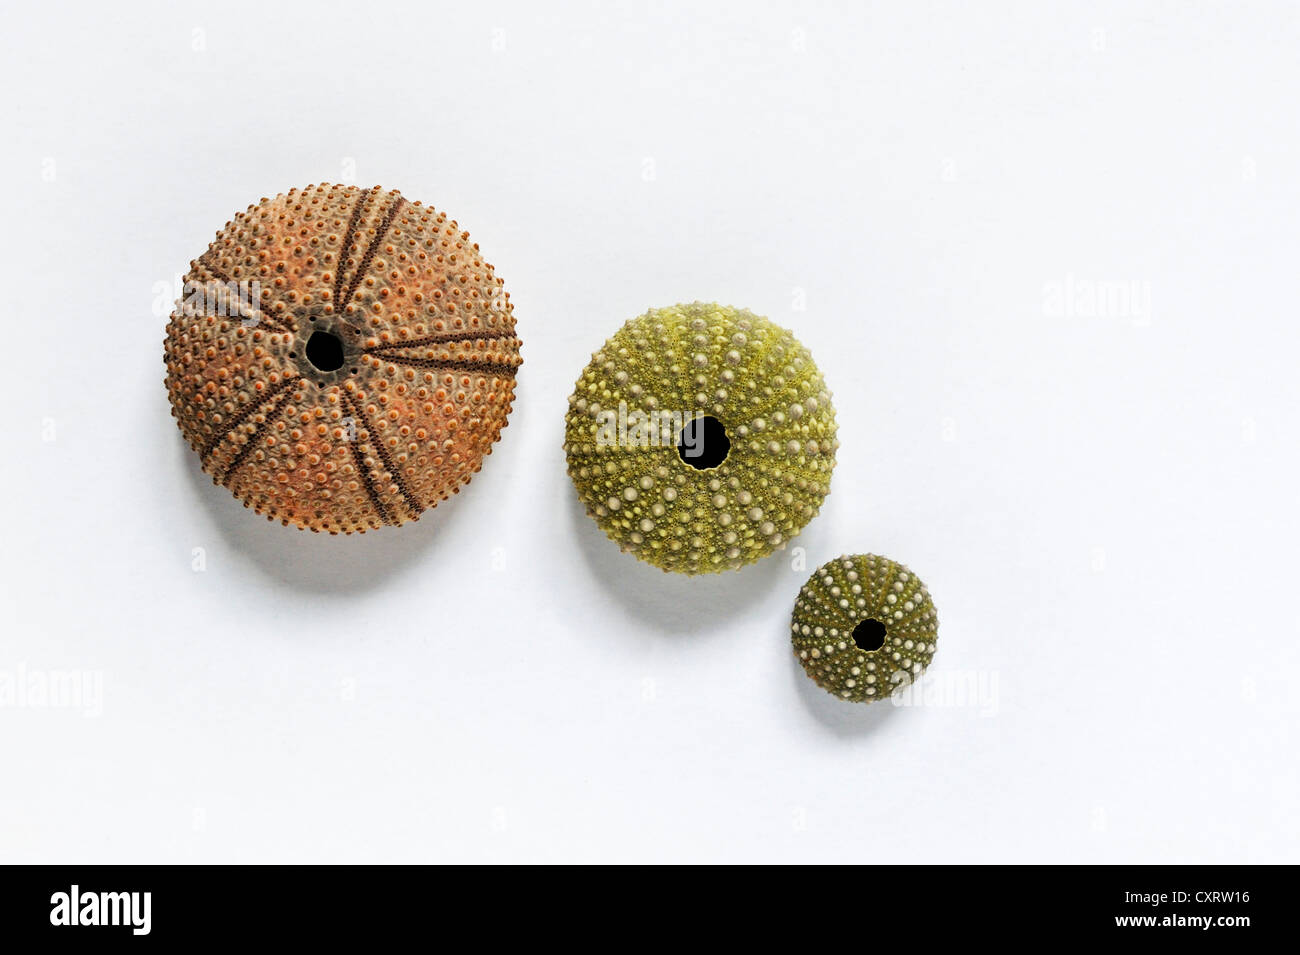 Sea urchin skeletons from the Mediterranean - Stock Image